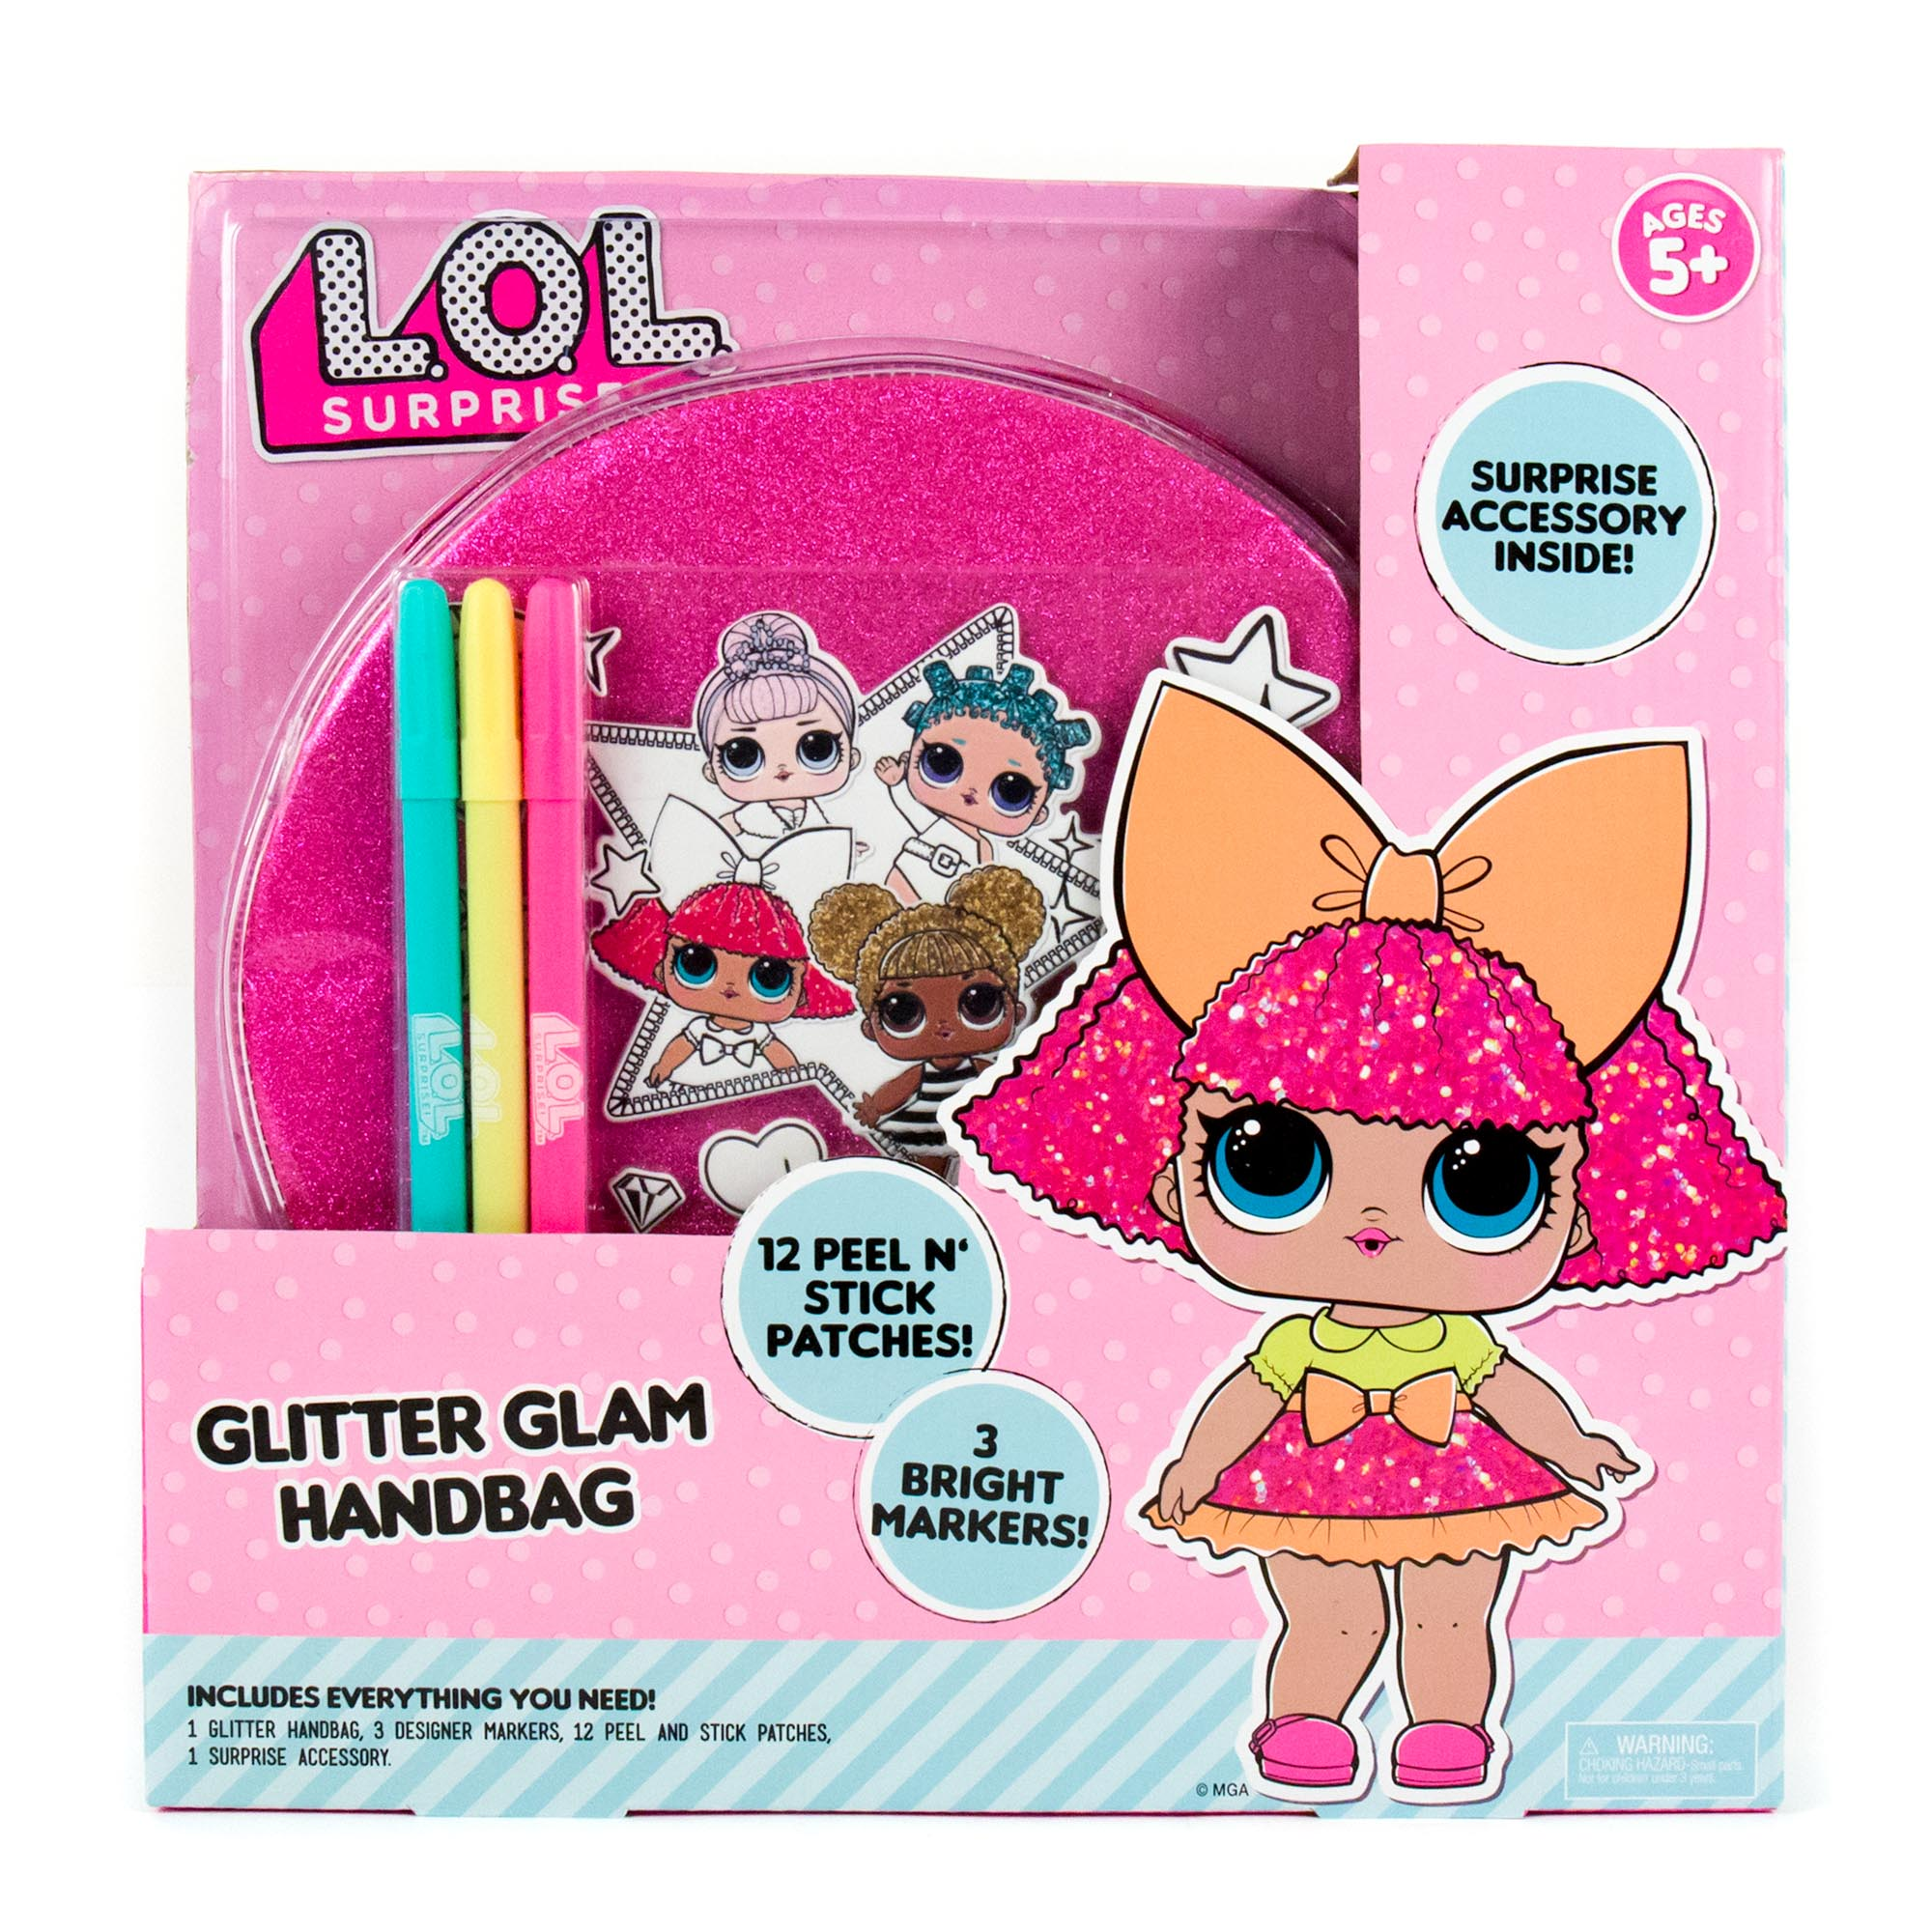 L.O.L. Surprise Glitter Glam Handbag